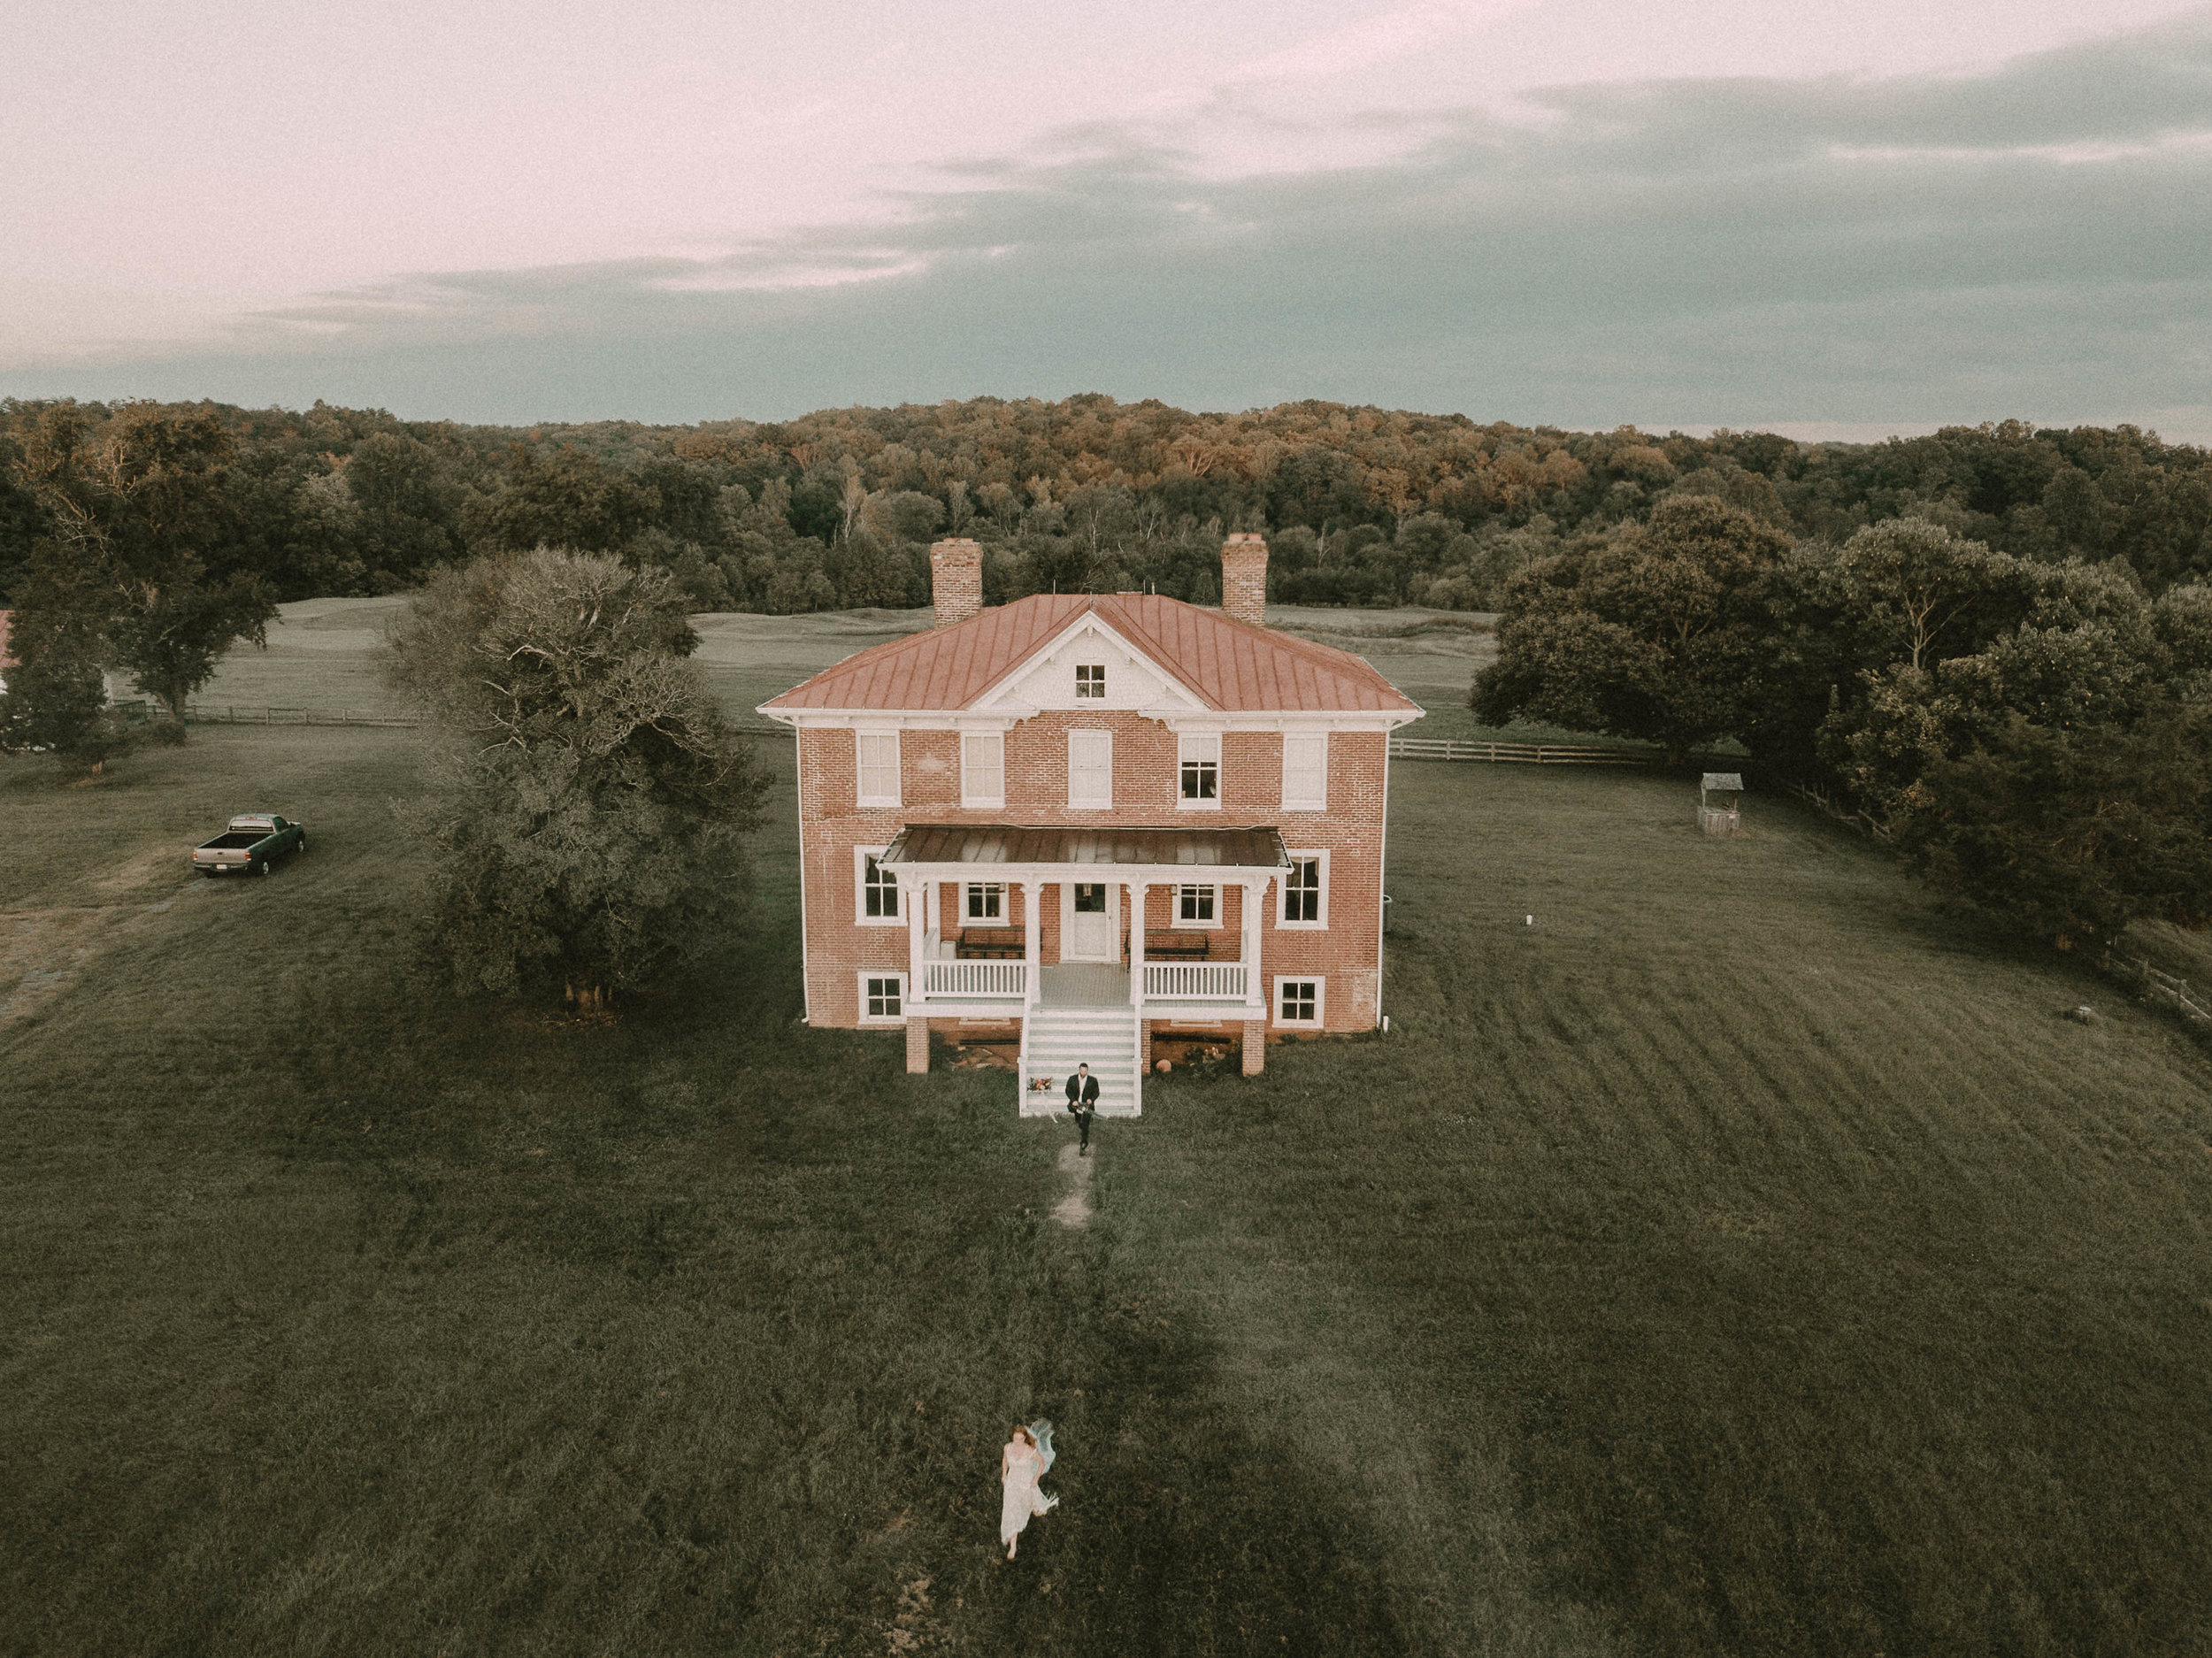 Drone shot of woman walking to farmhouse